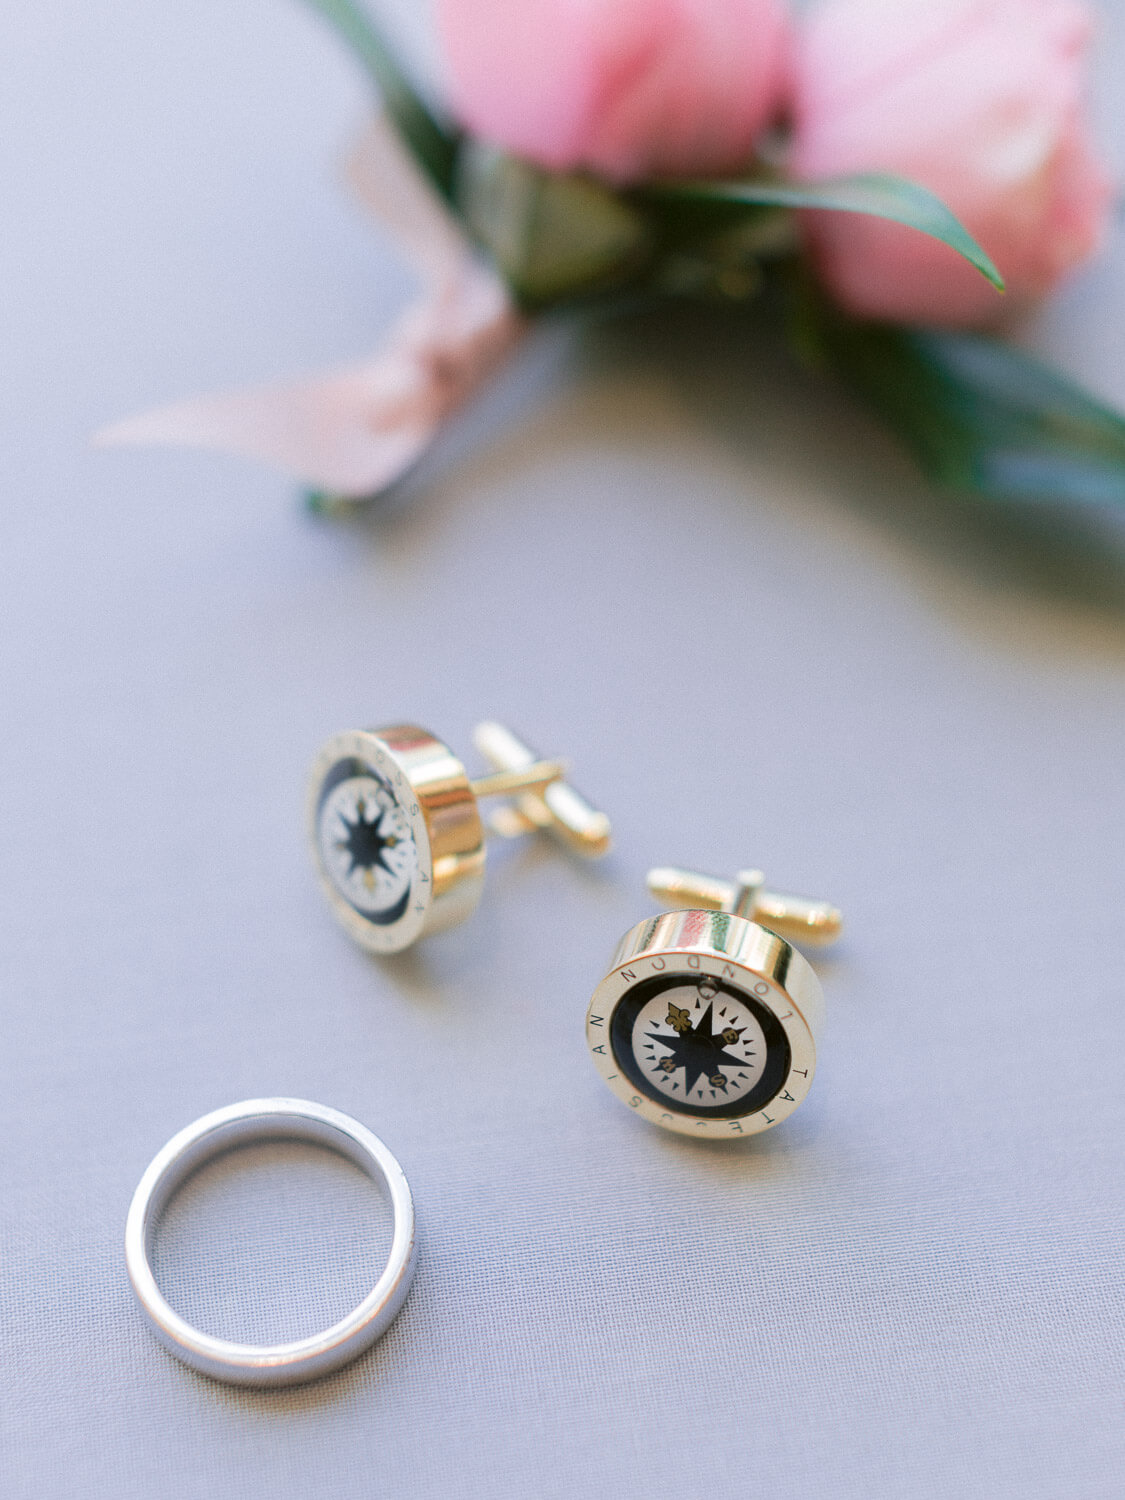 luxurious groom's cufflinks and wedding band by Portugal Wedding Photographer